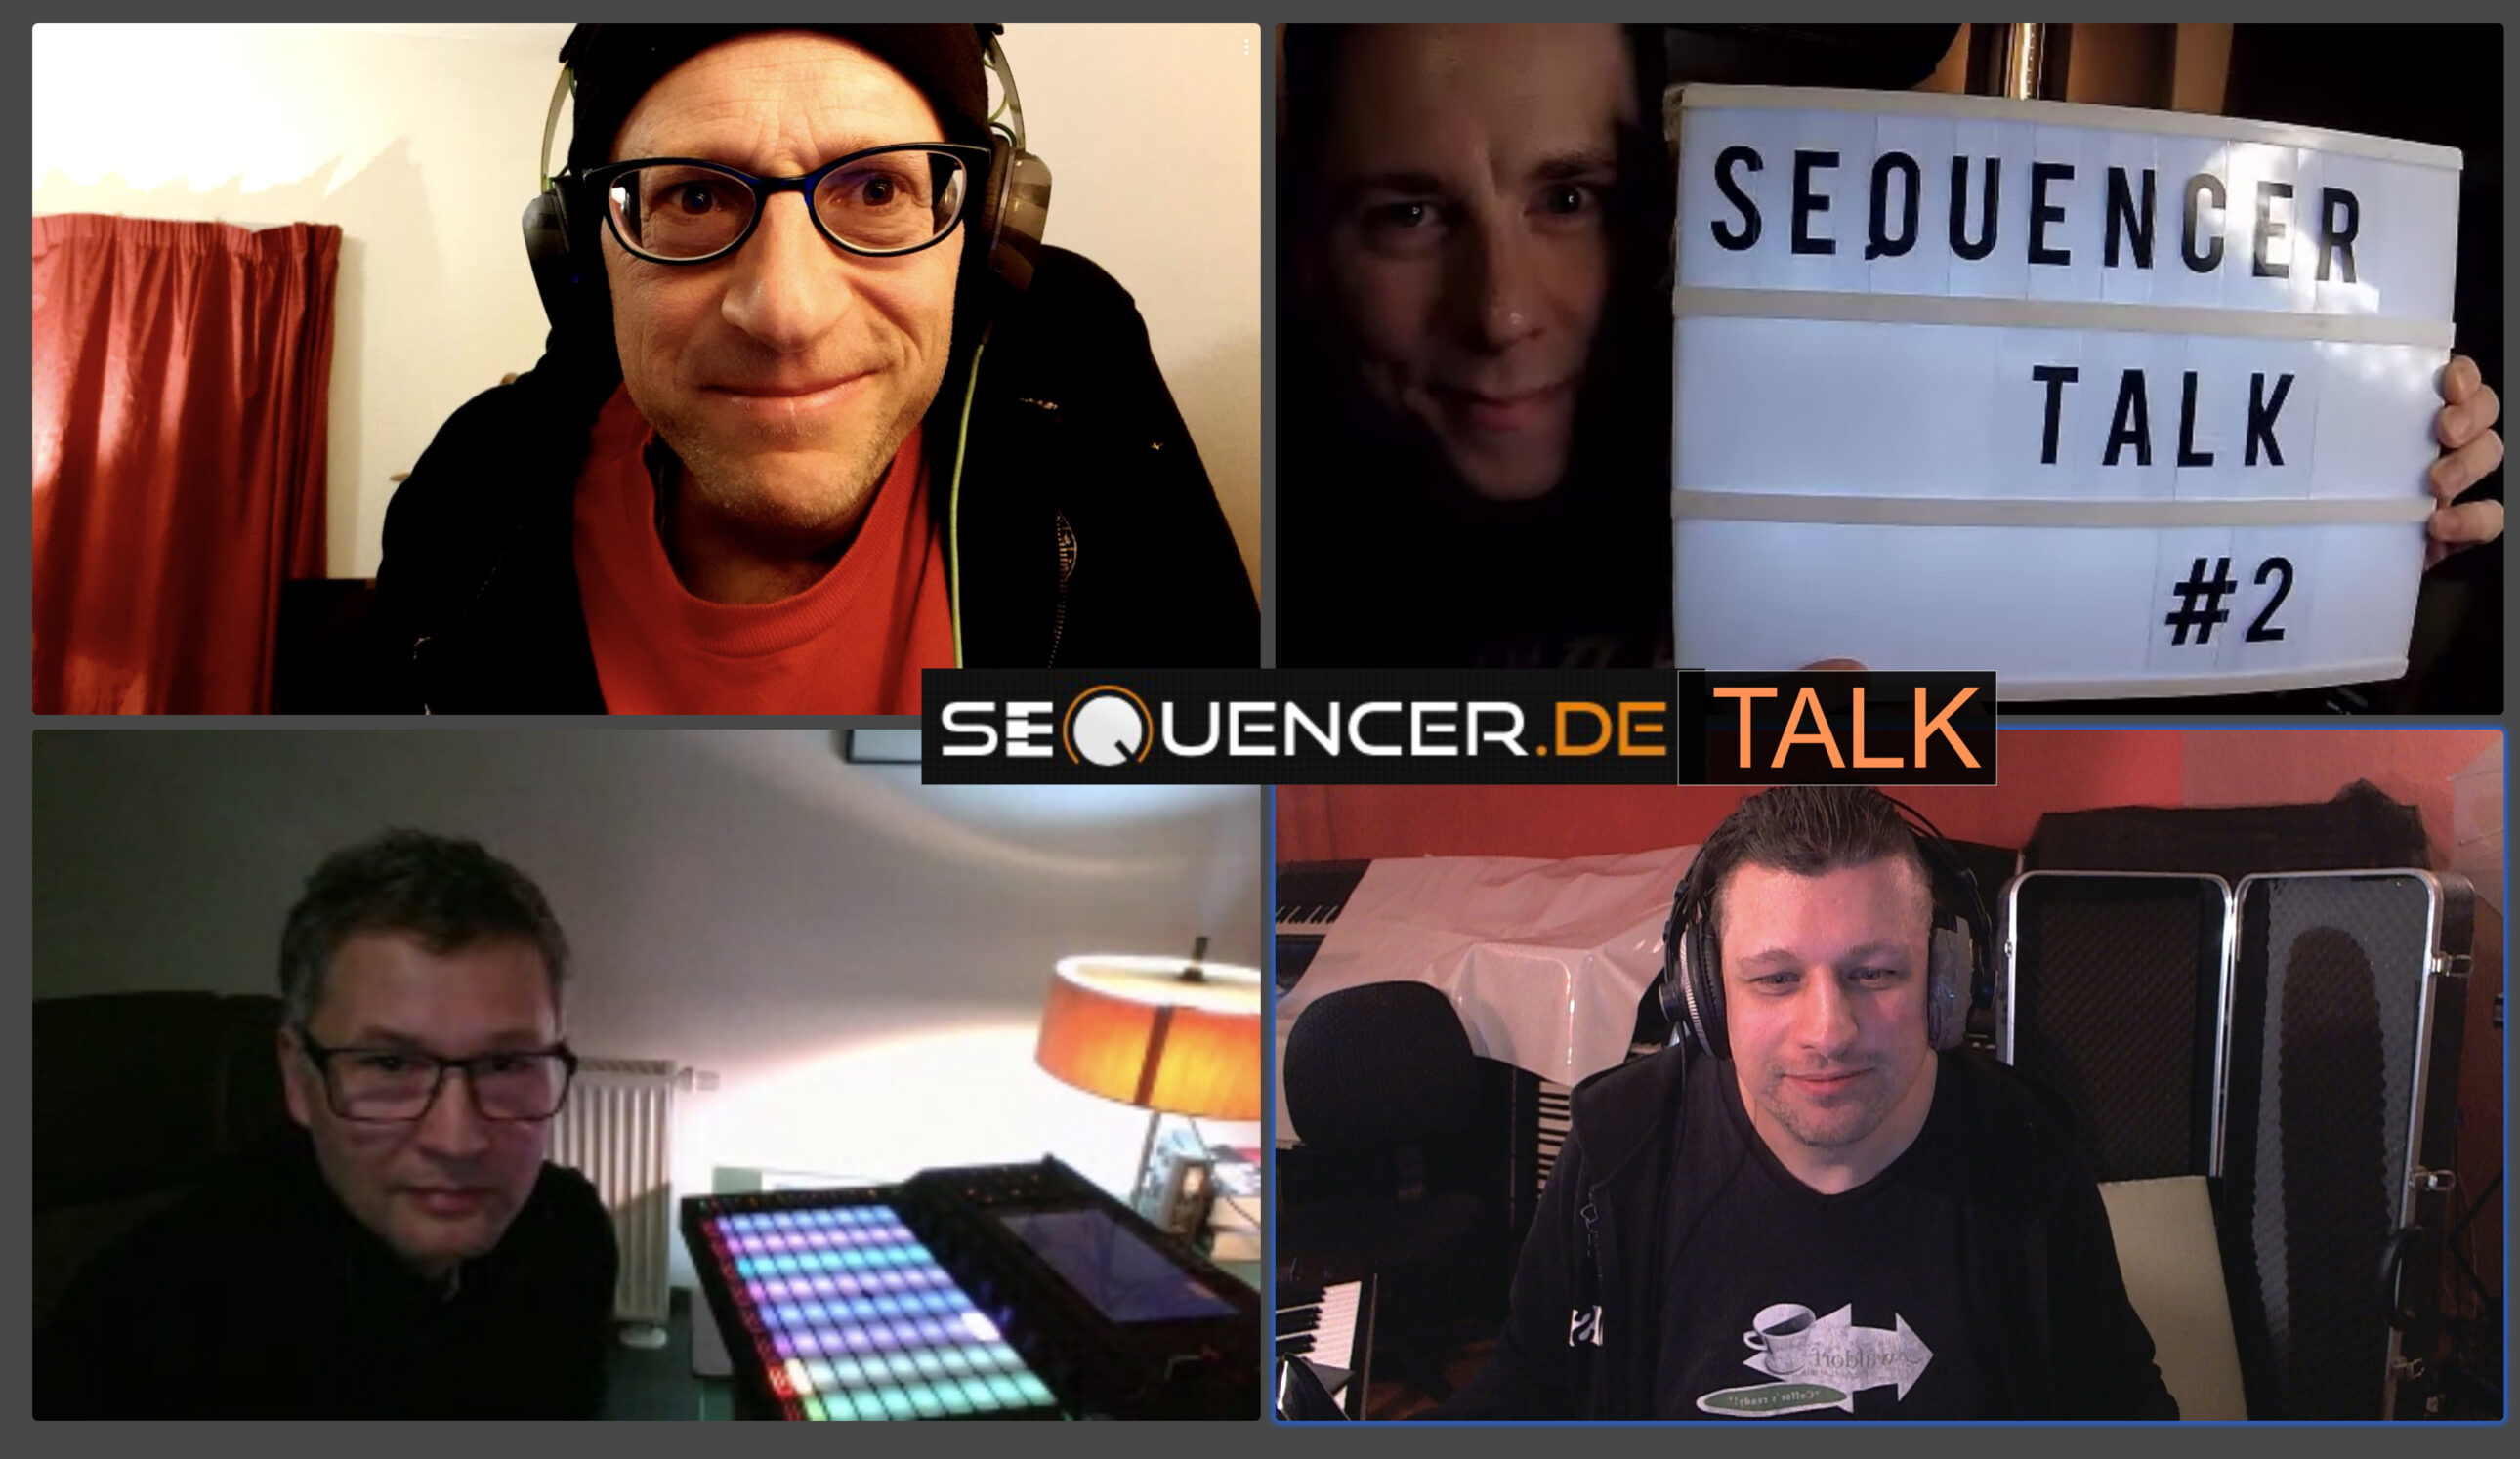 Sequencer Talk 2